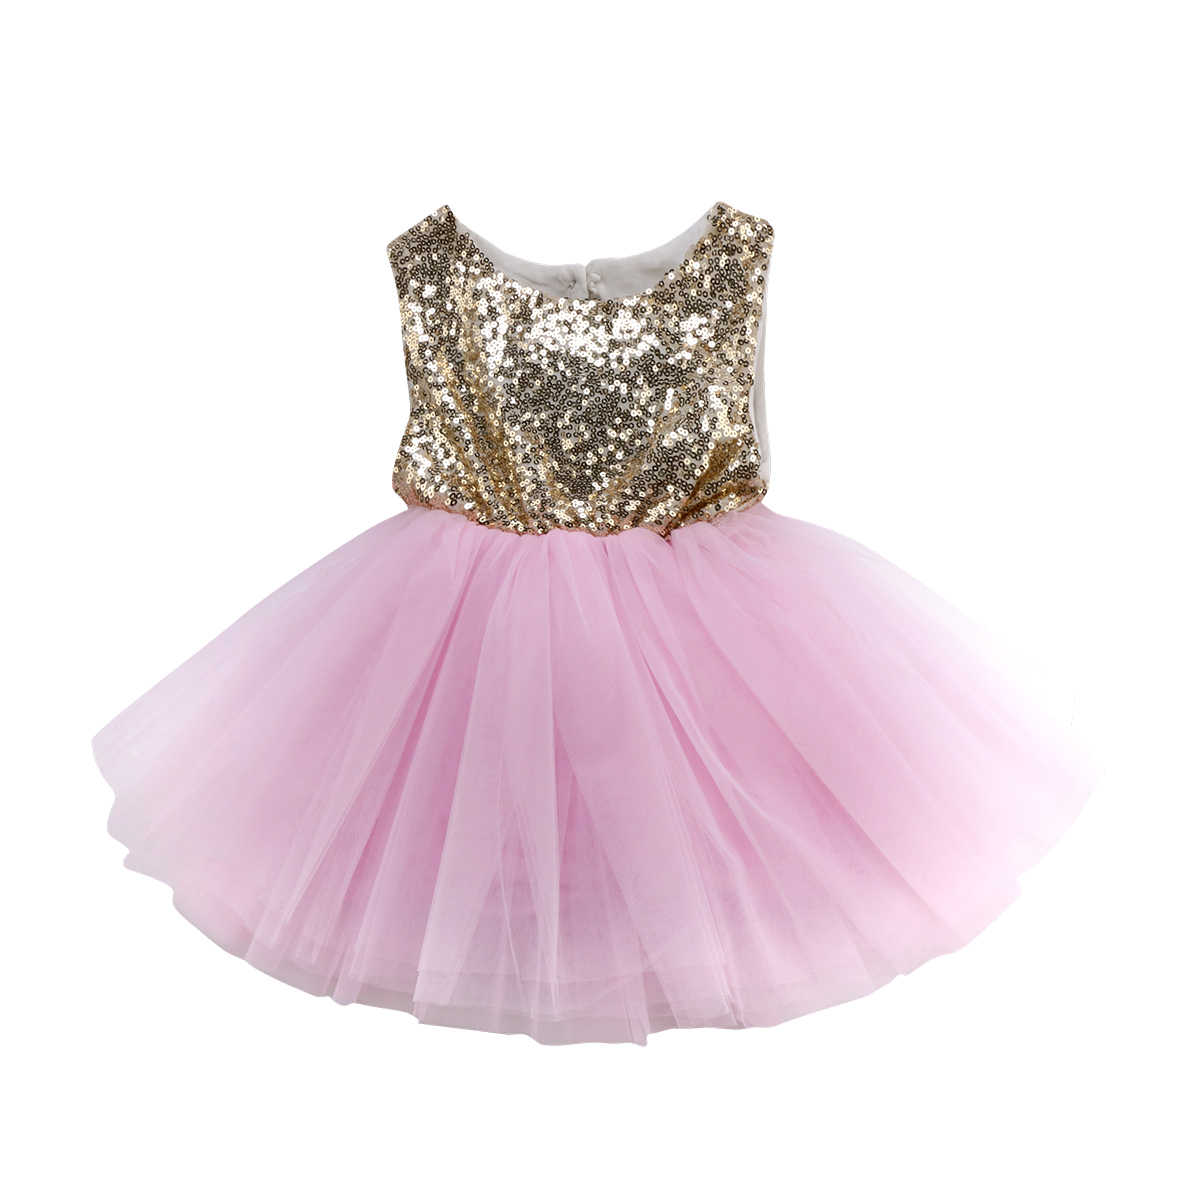 2019 Newest Style Kids Baby Lovely Girl Three Colors Bling Ball Gown Tutu  Party Dress Backless 7b91f2b239e2